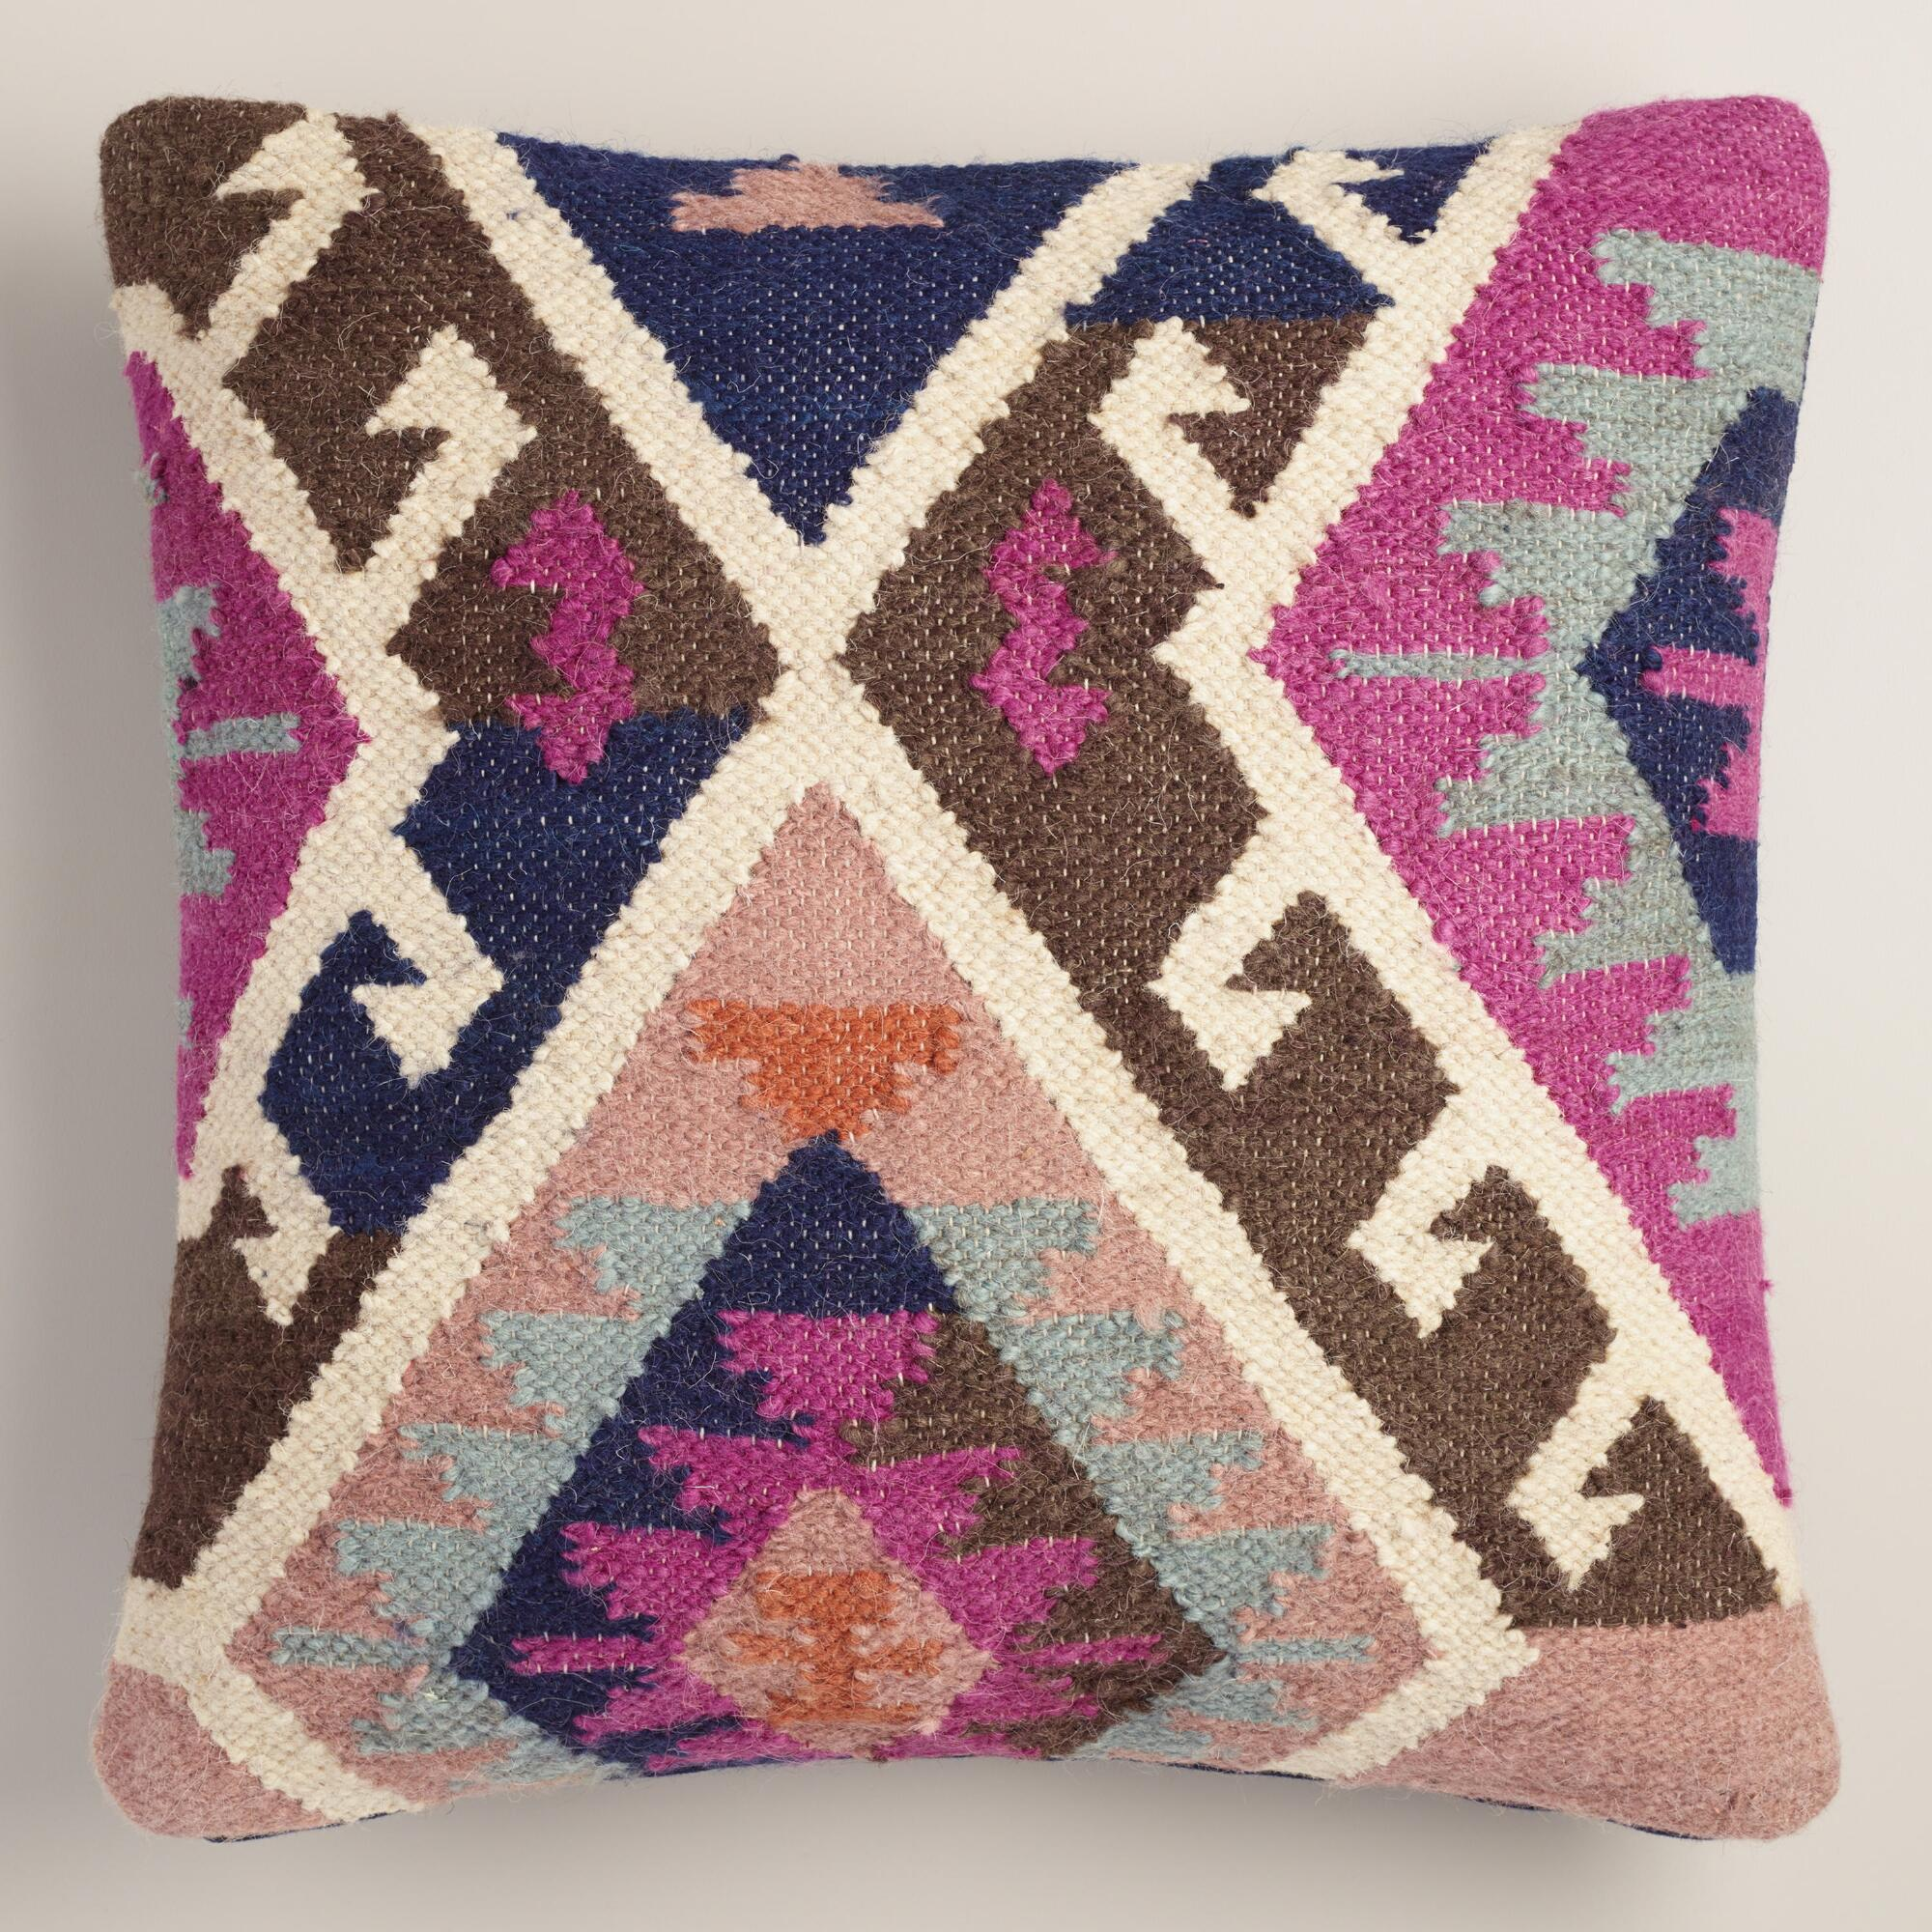 Throw Pillows King Size Bed : Pink Wool and Cotton Kilim Throw Pillow World Market